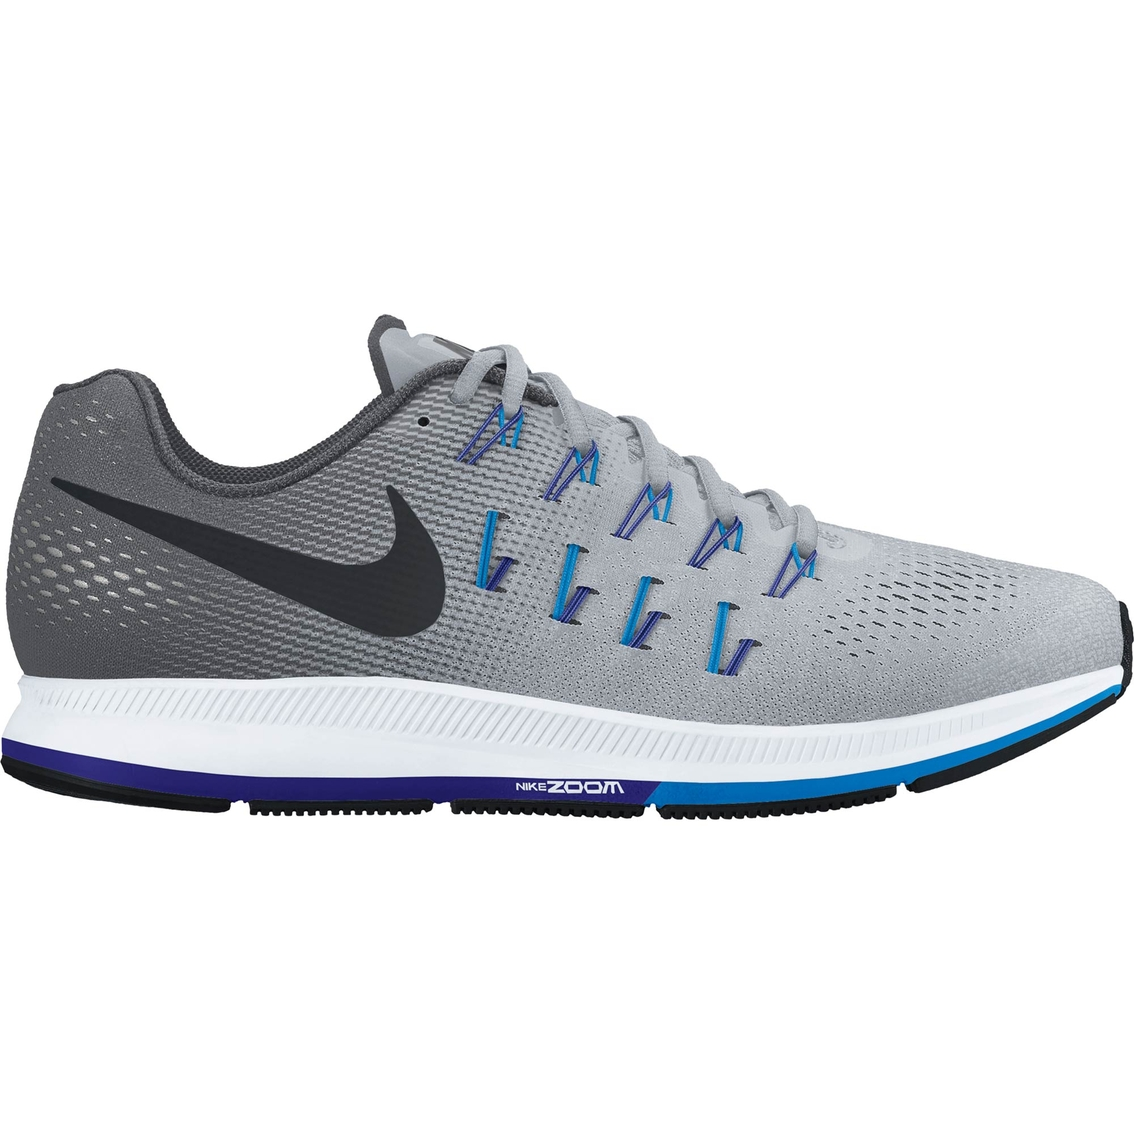 133adf86a69e0 Nike Men s Air Zoom Pegasus 33 Running Shoes